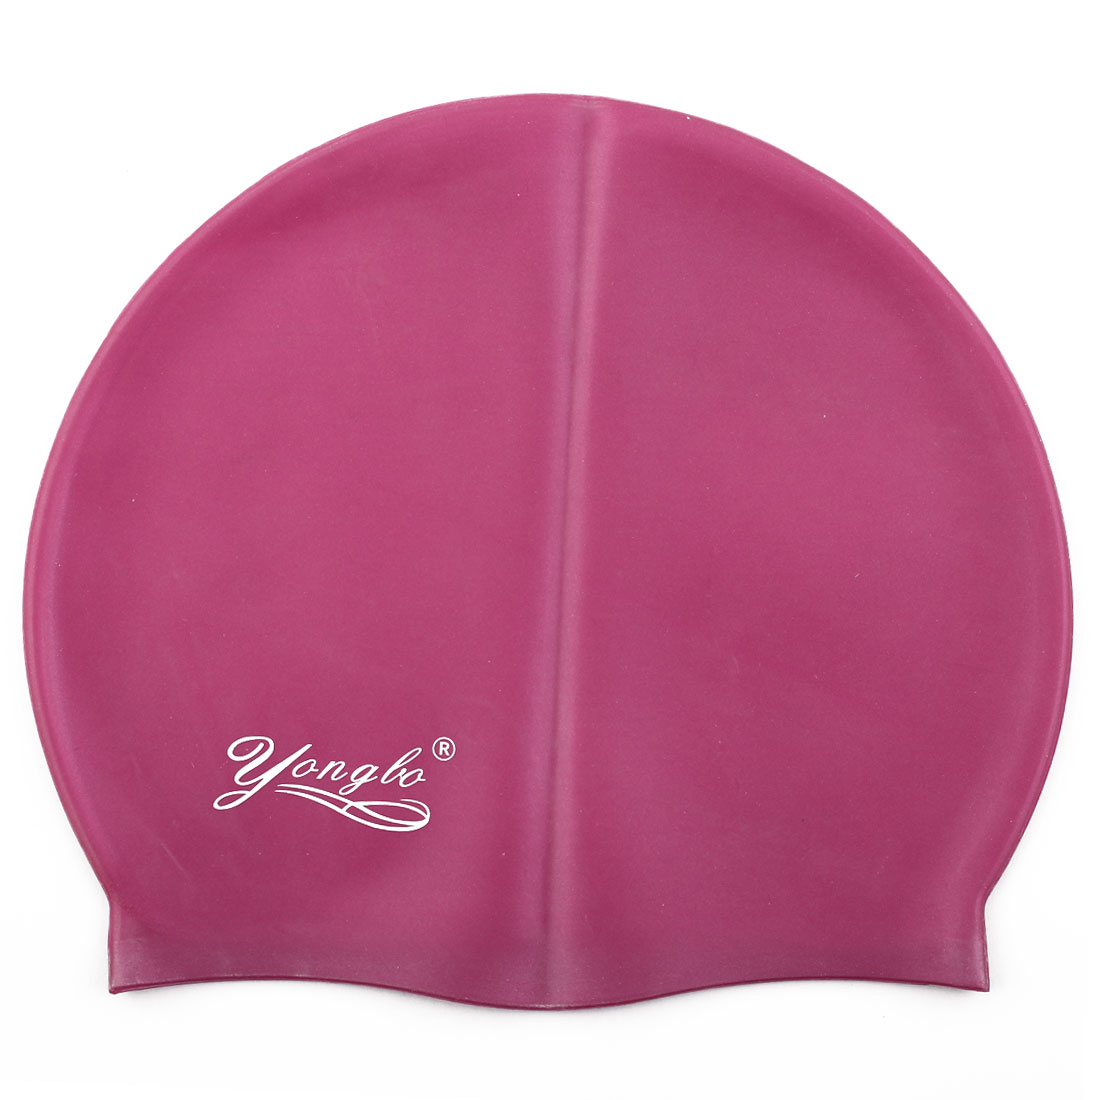 Unisex Silicone Dome Shaped Non-slip Stretchable Swimming Cap Portable Bathing Hat Burgundy